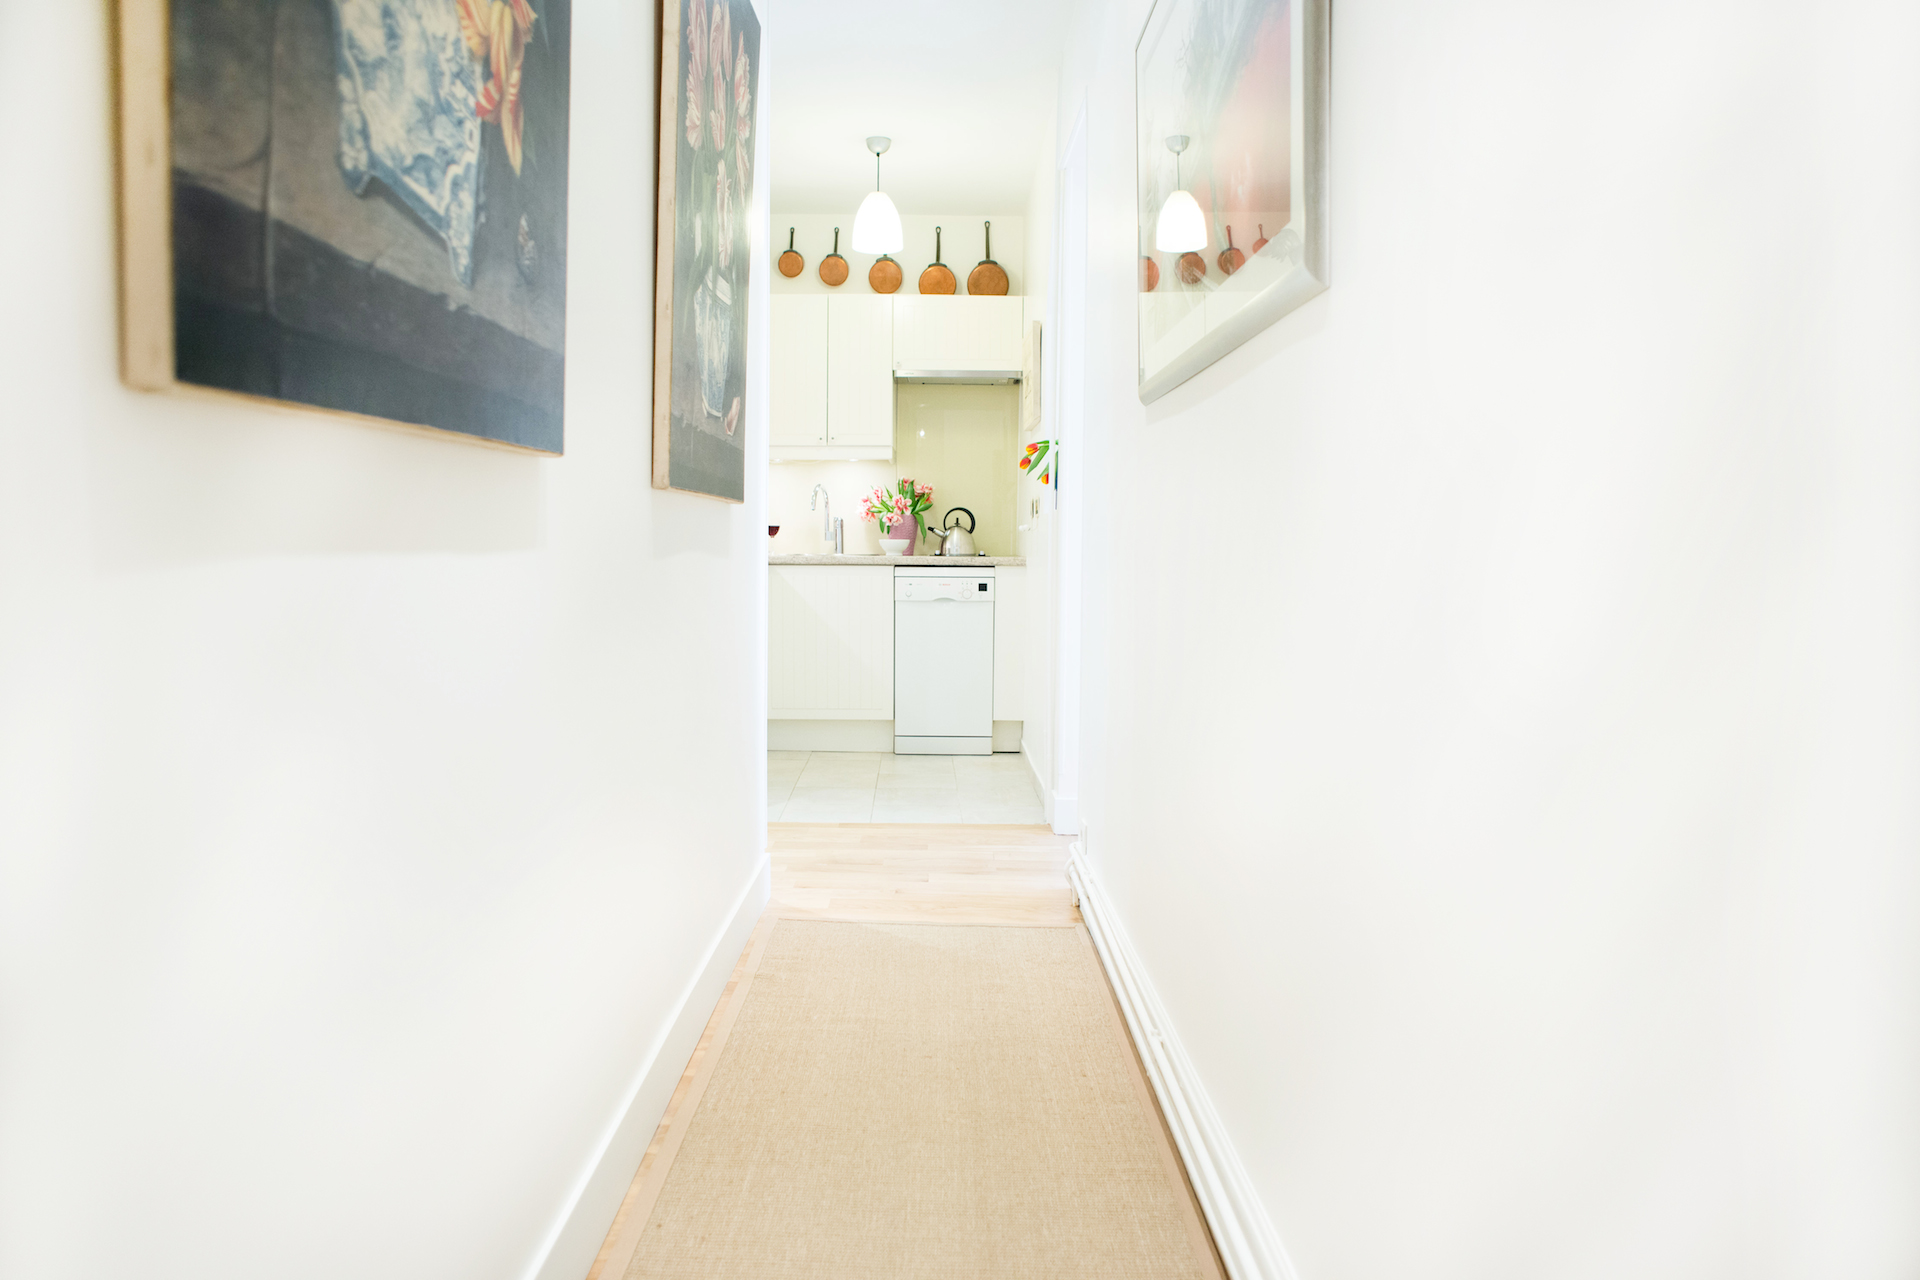 Entryway to kitchen, dining room and living room in the Vougeot vacation rental offered by Paris Perfect